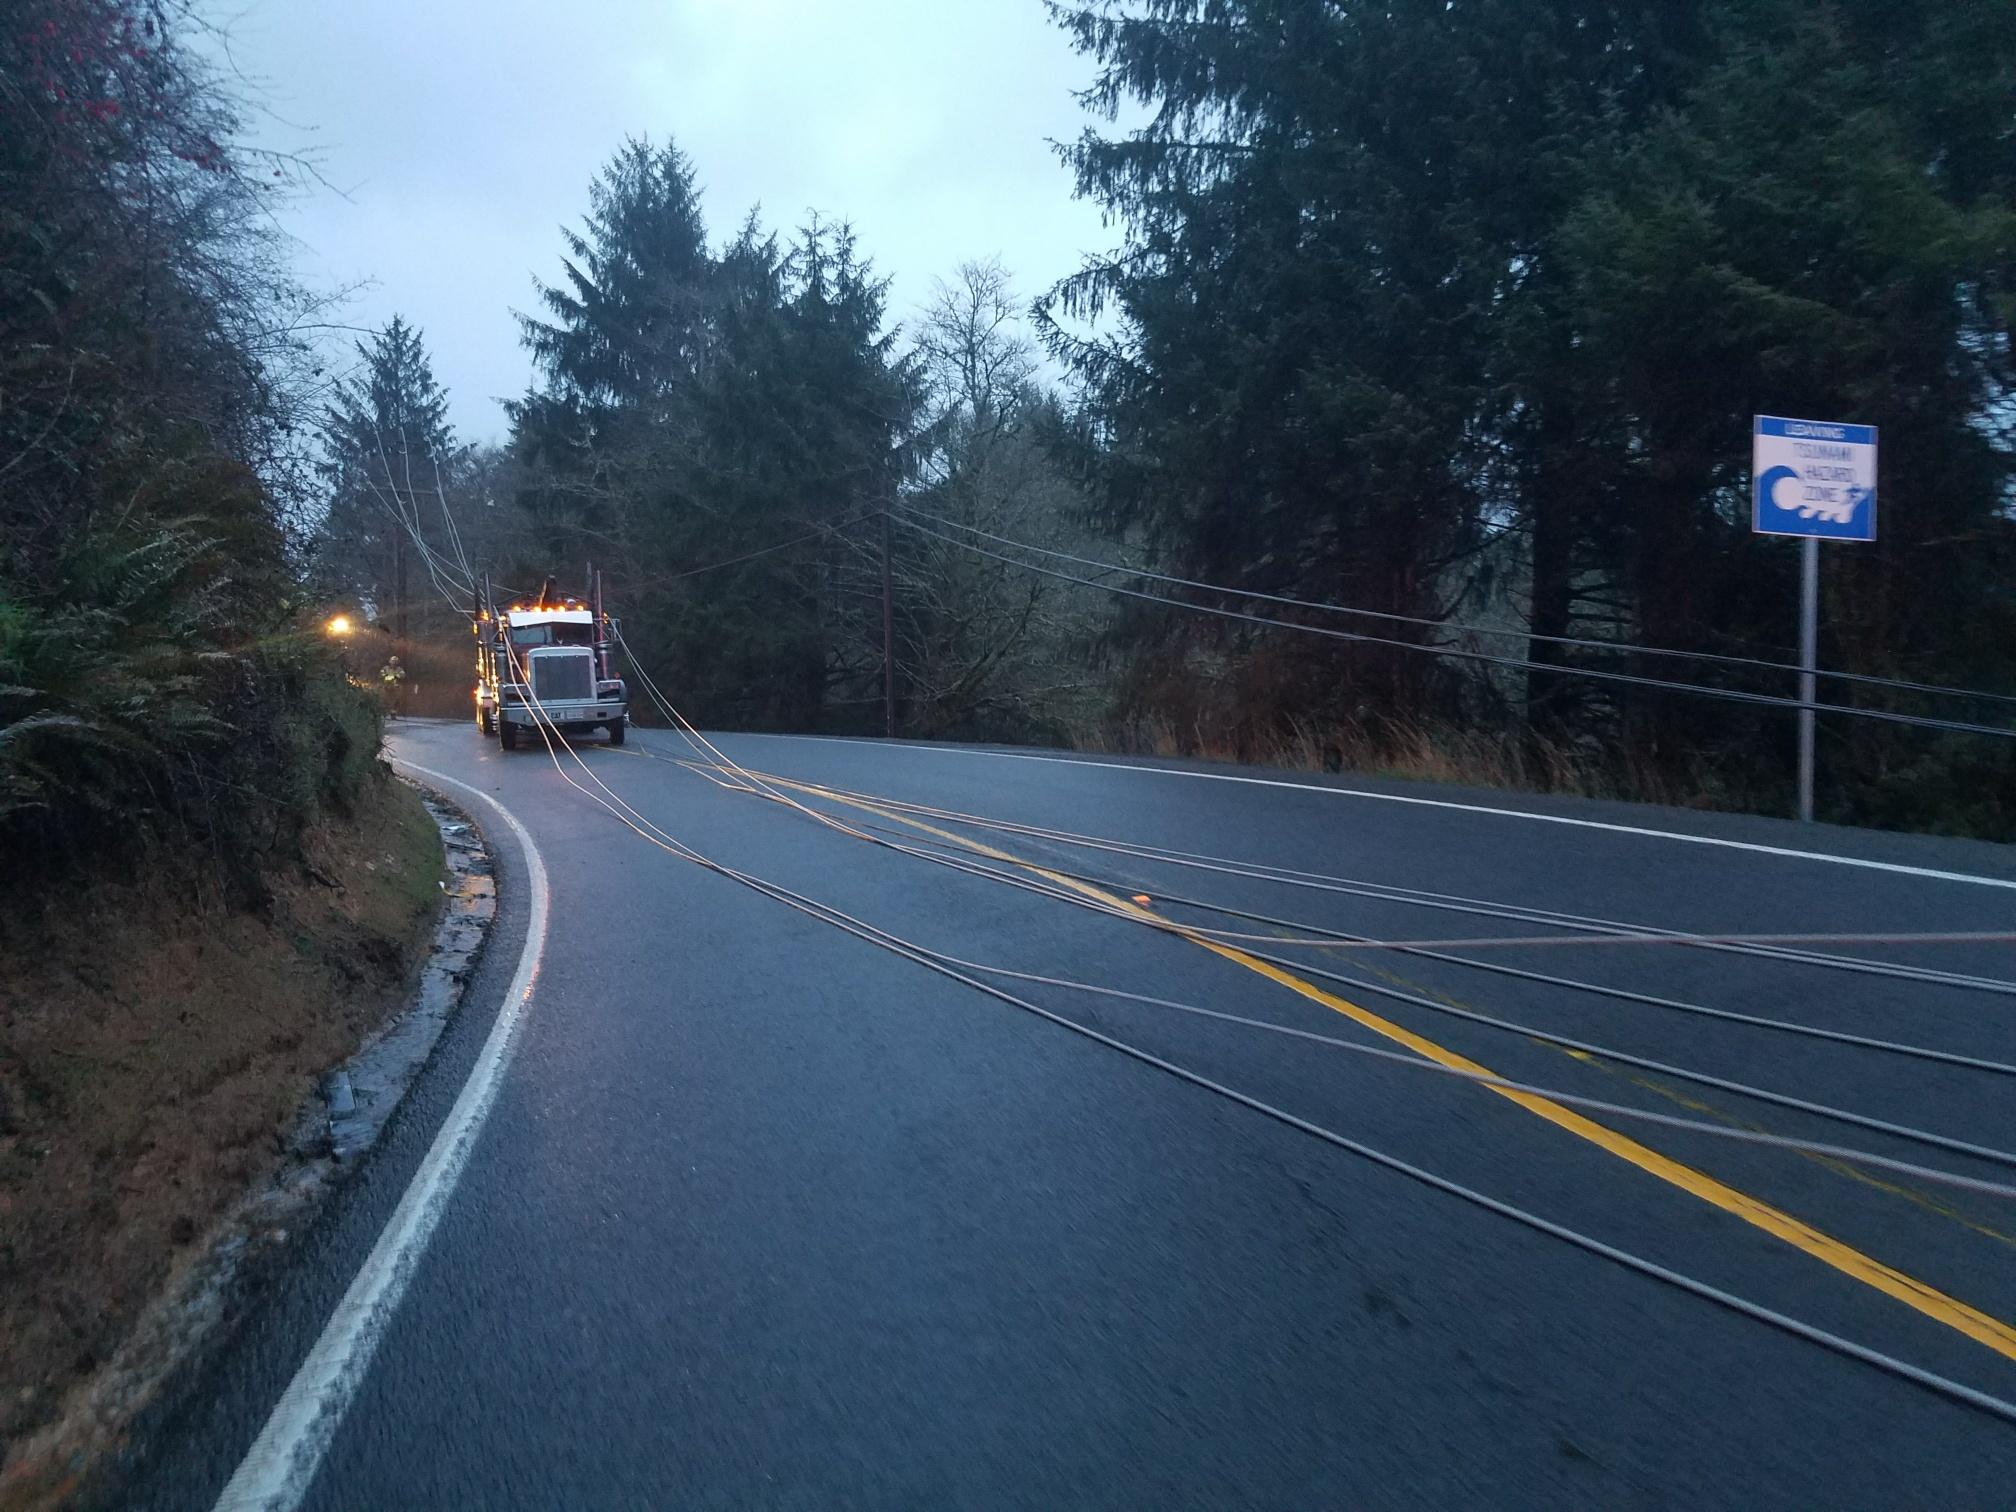 A fatal cash brought live powerlines down across Highway 101 between Lincoln City and Tillamook on Thursday morning, closing the coast highway, Oregon State Police said. (OSP)